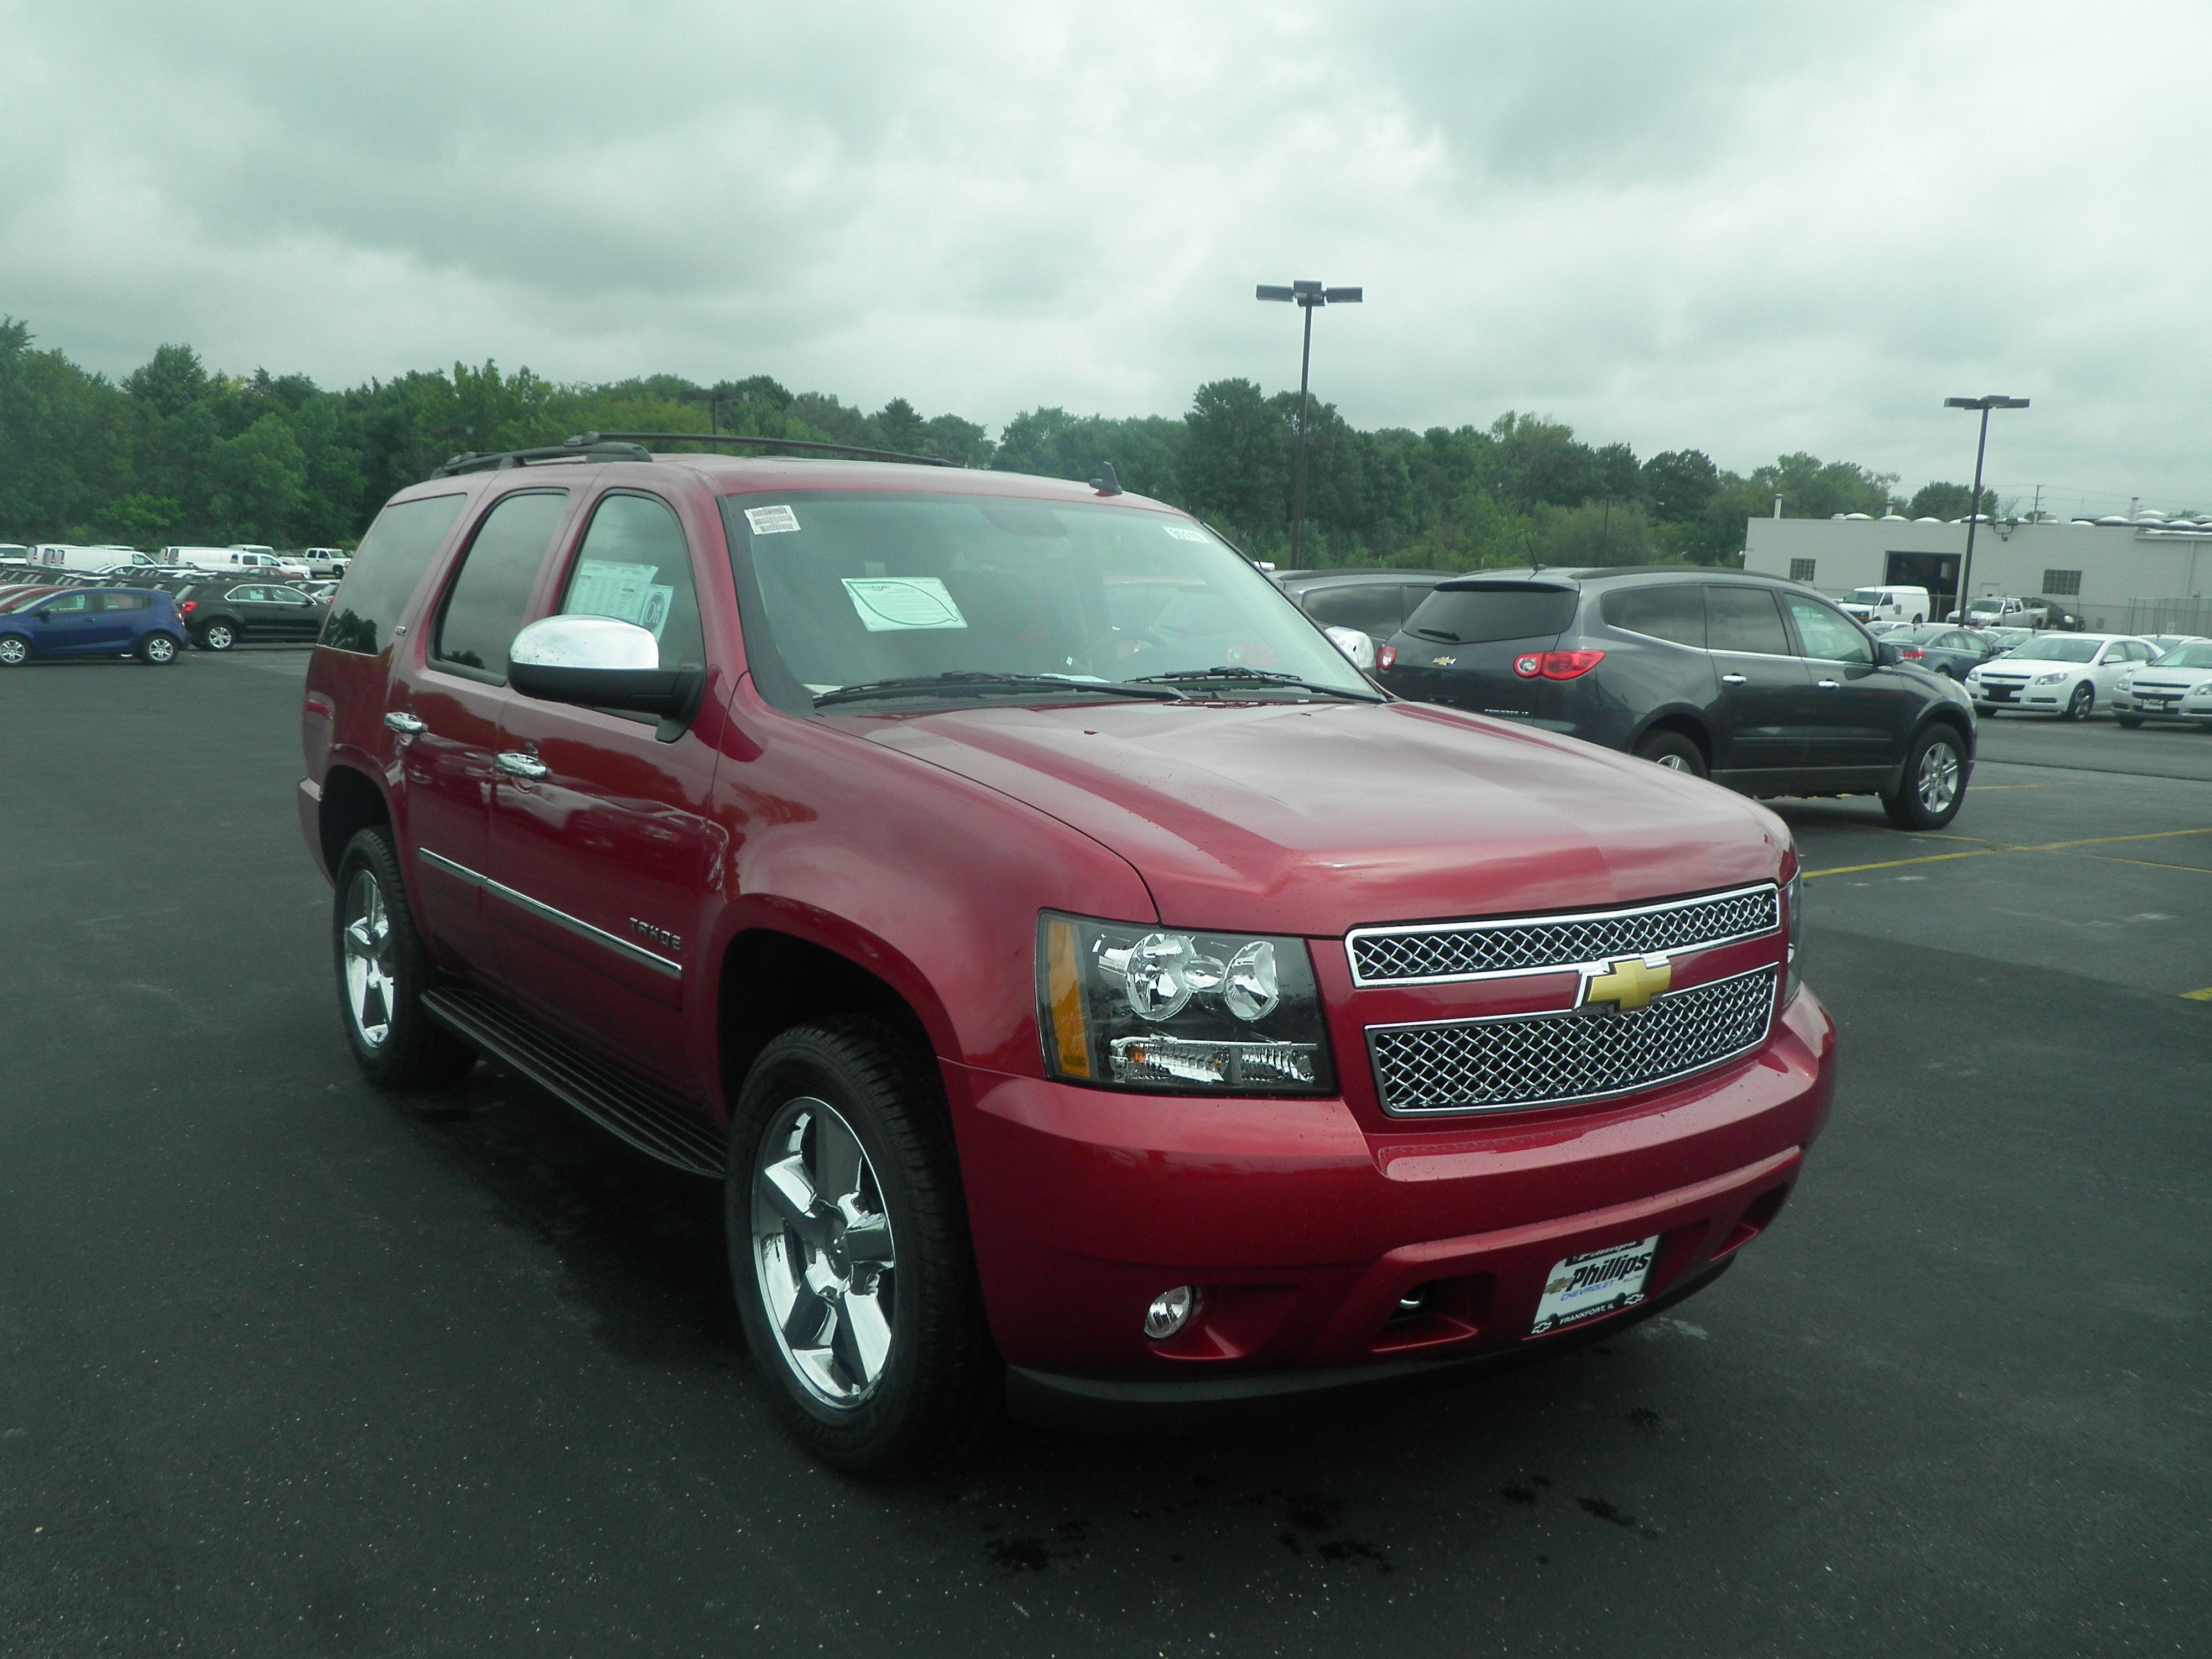 2013 Chevrolet Tahoe Ltz Priced At 56 805 After Discounts And